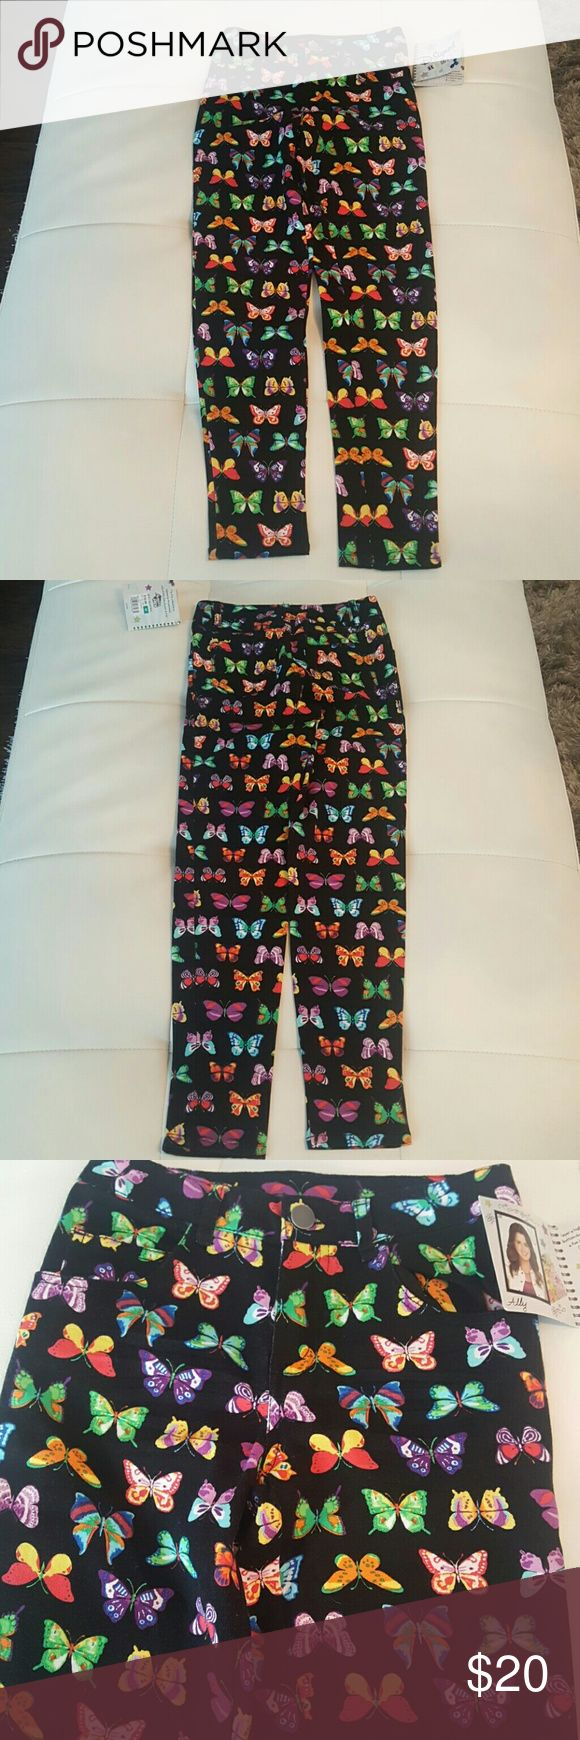 D-Signded Austin and Ally Cotton Pants Brand new with tags. Disney Bottoms Casual